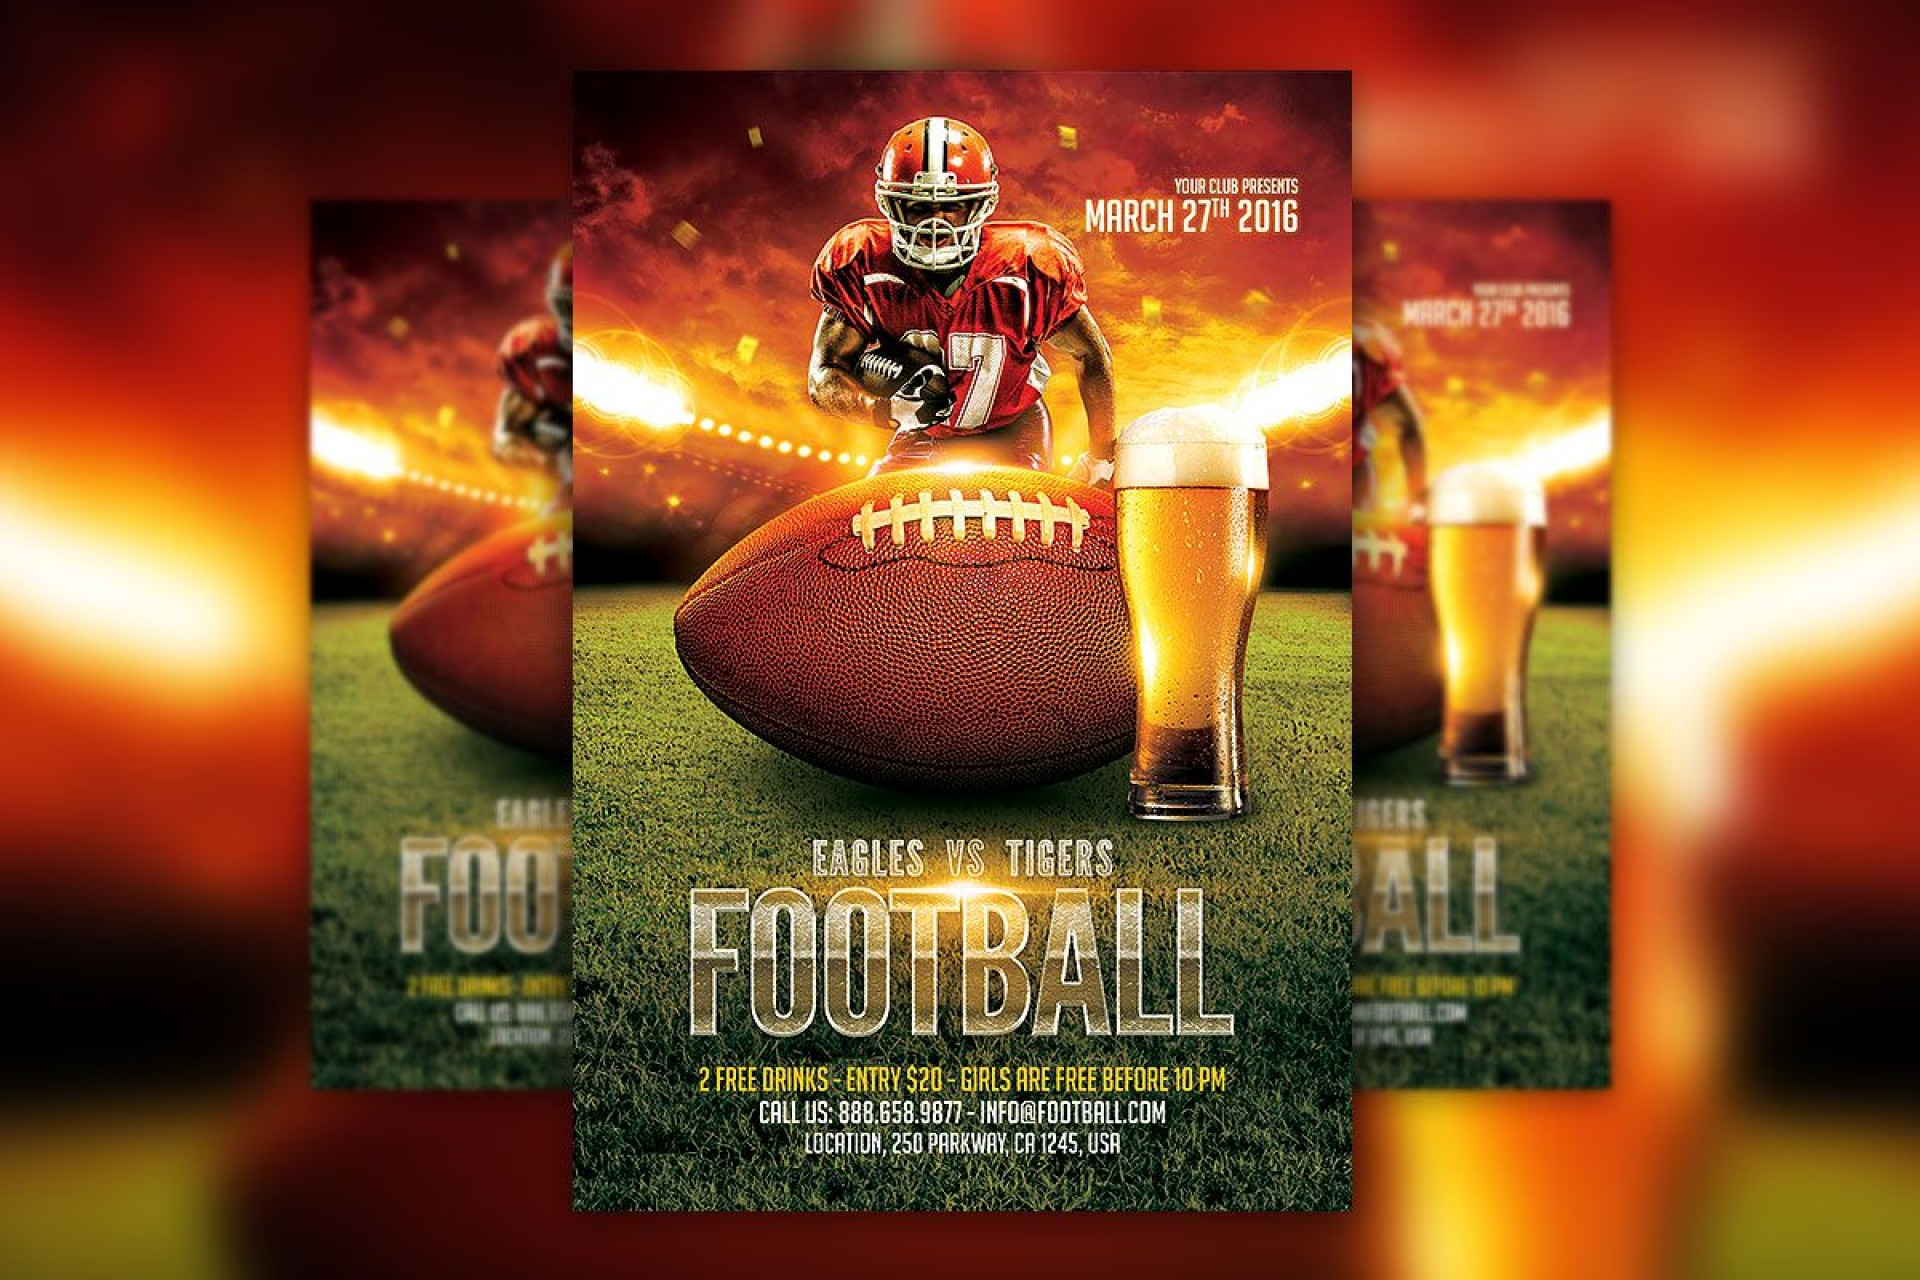 009 Awful Football Flyer Template Free Sample  Download Flag Party1920